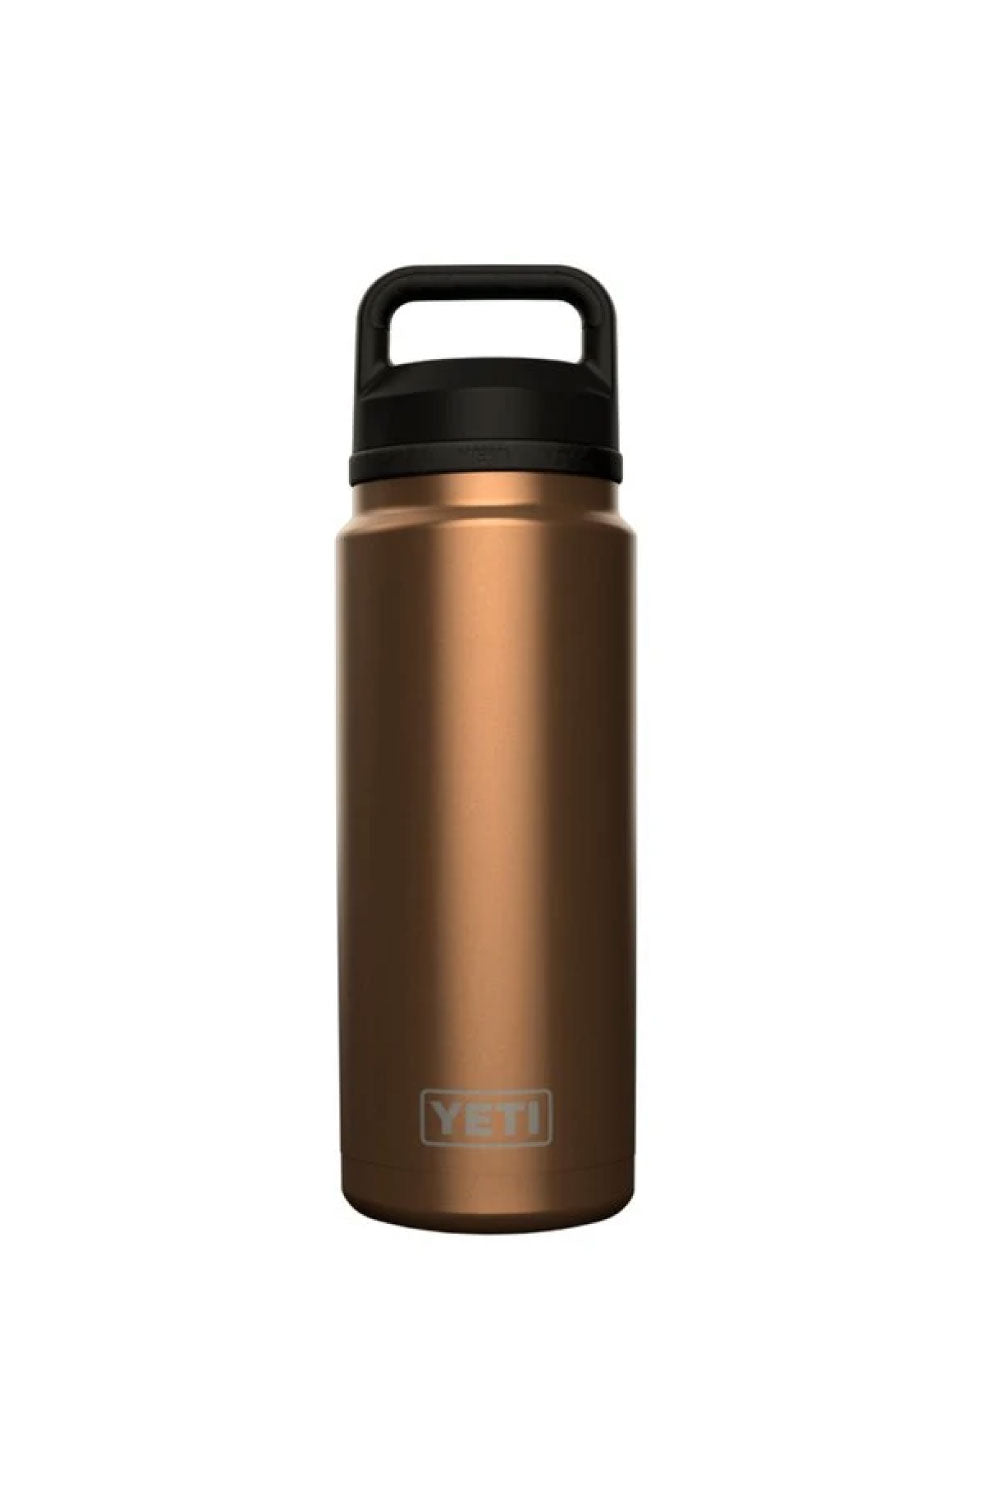 YETI Rambler PVD 36oz (1065ml) Drink Bottle